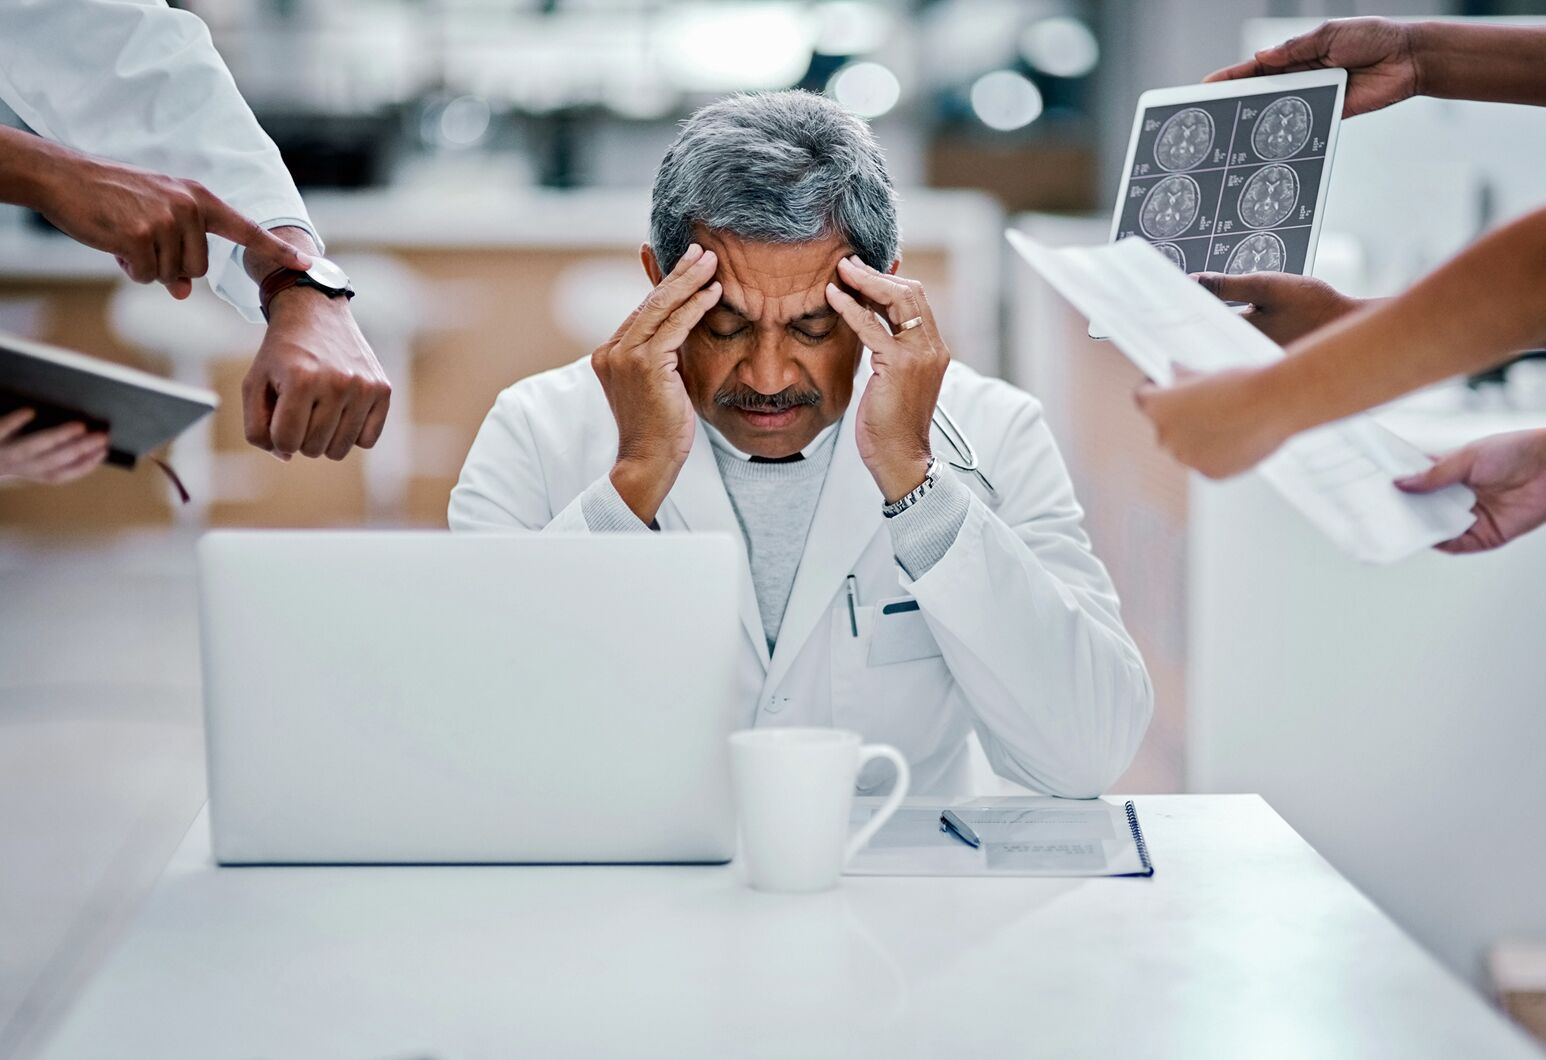 Surrounded by stressors, a physician holds his head